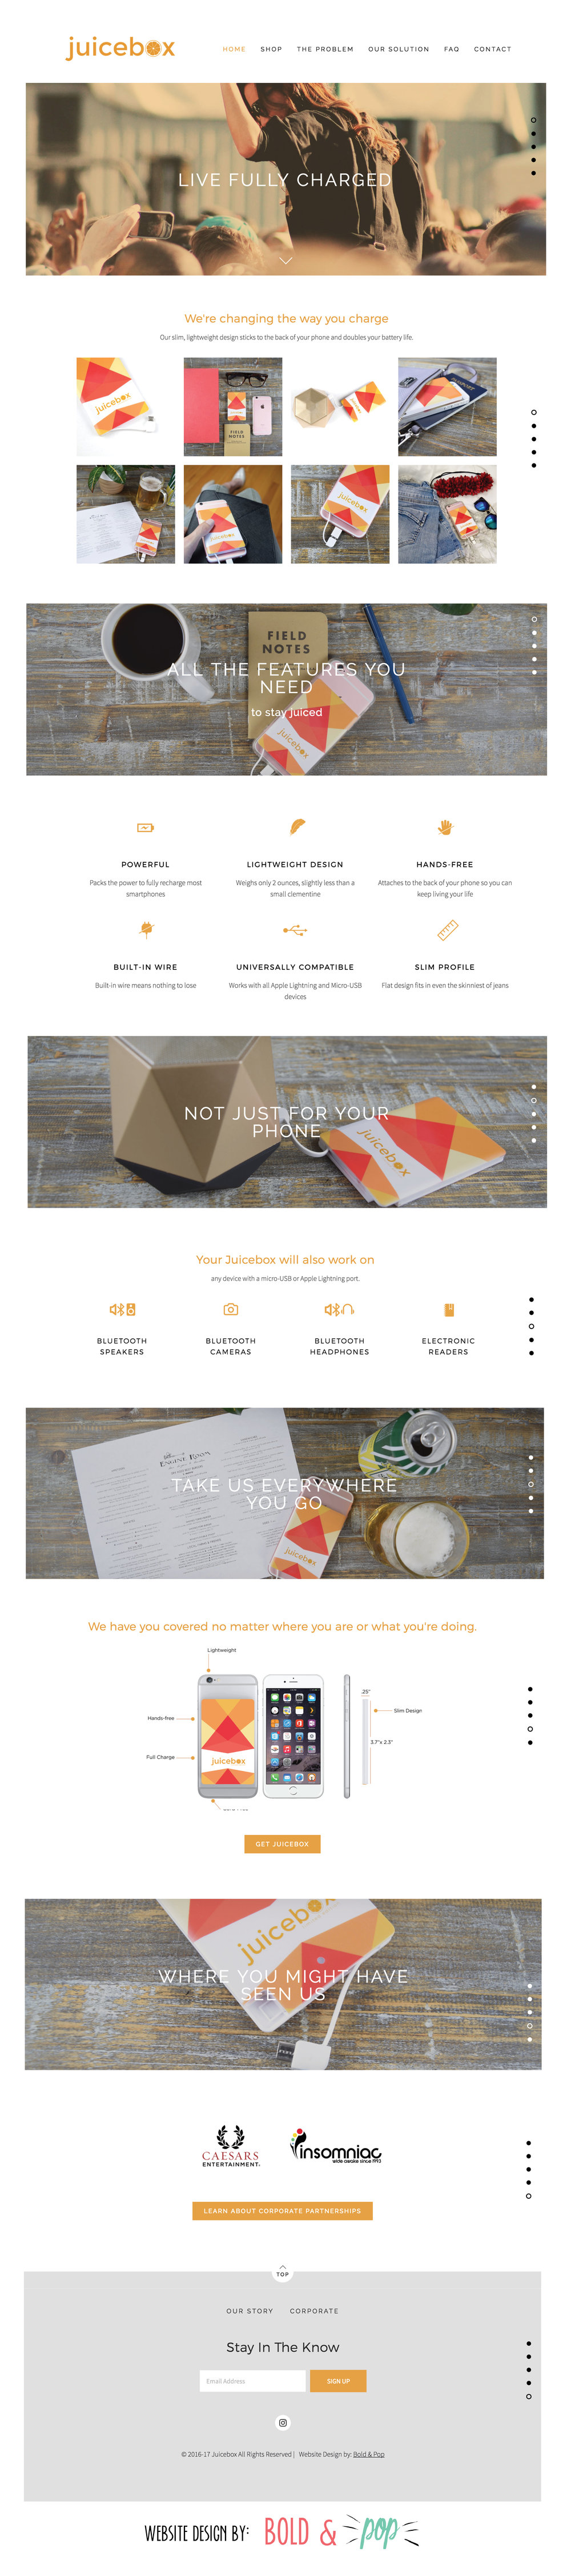 Bold & Pop : Juicebox Website Design